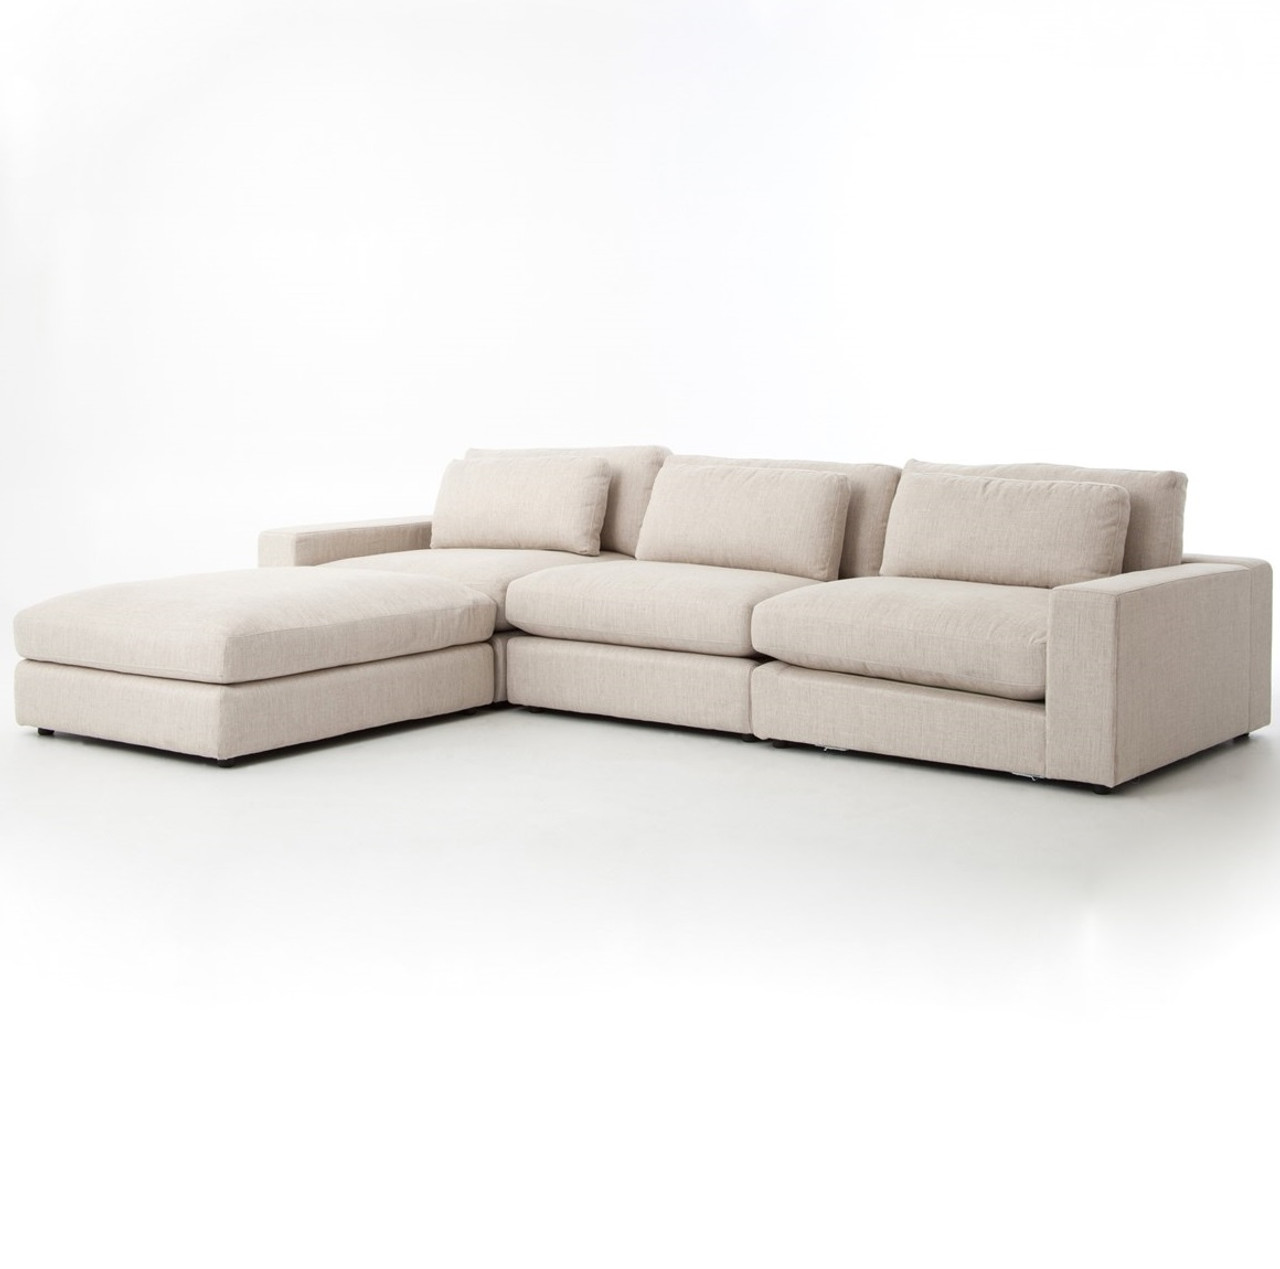 Bloor Beige Contemporary 4 Piece Sectional Sofa